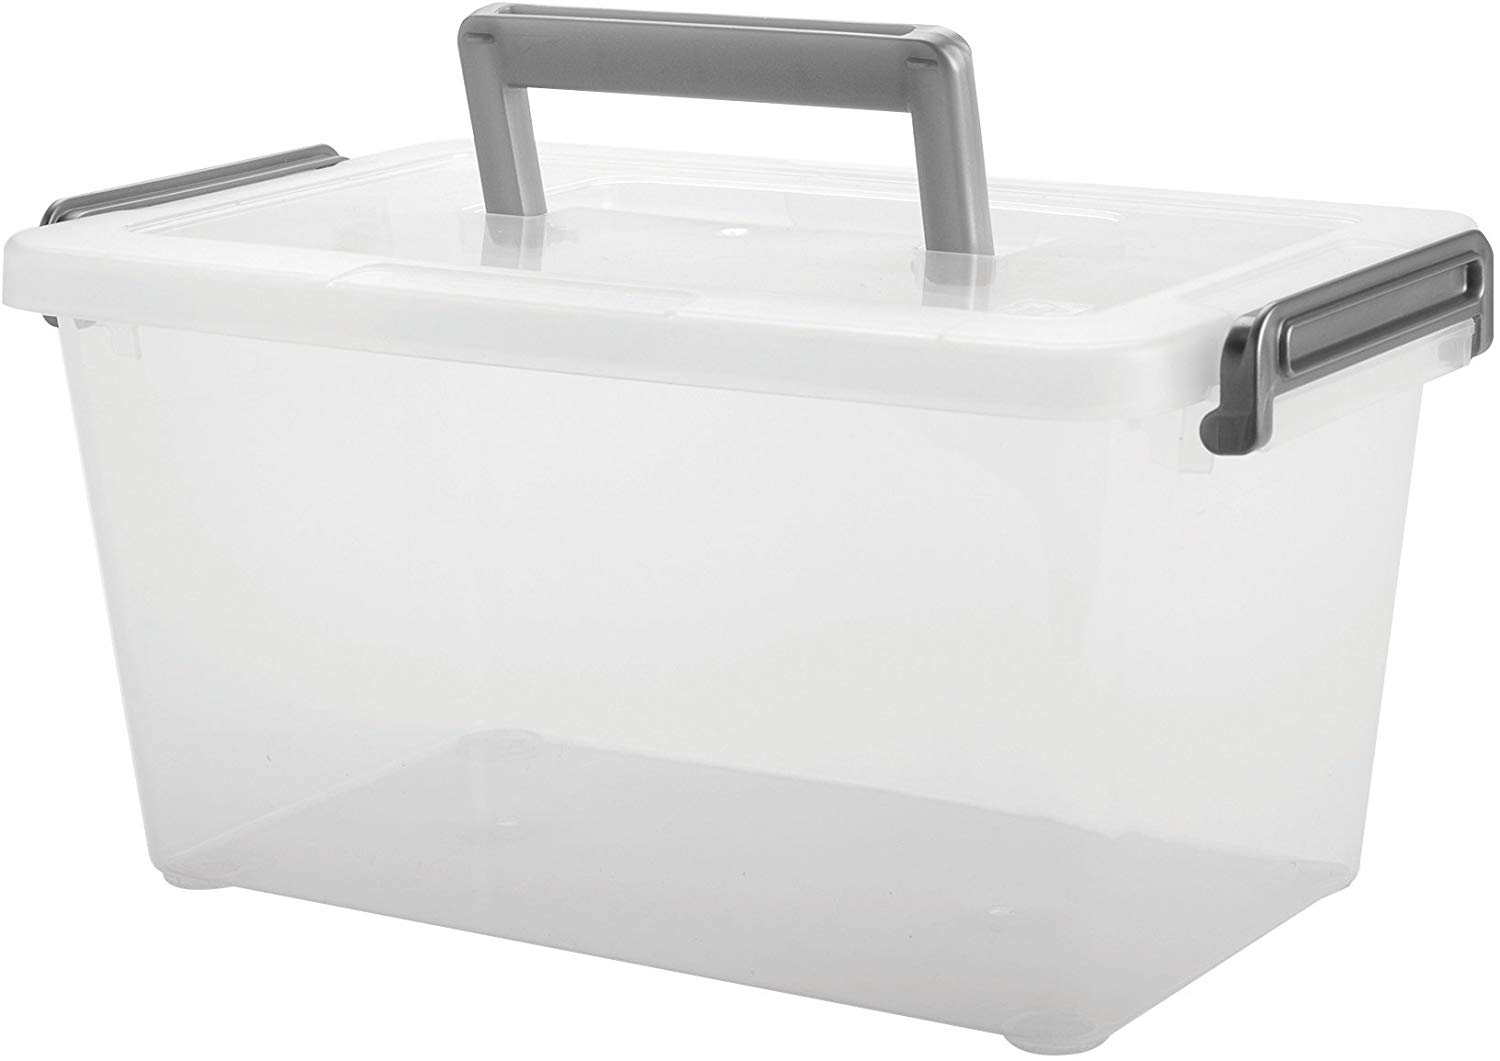 Small Stackable Latch Box, 6.5 Inch x 4.5 Inch